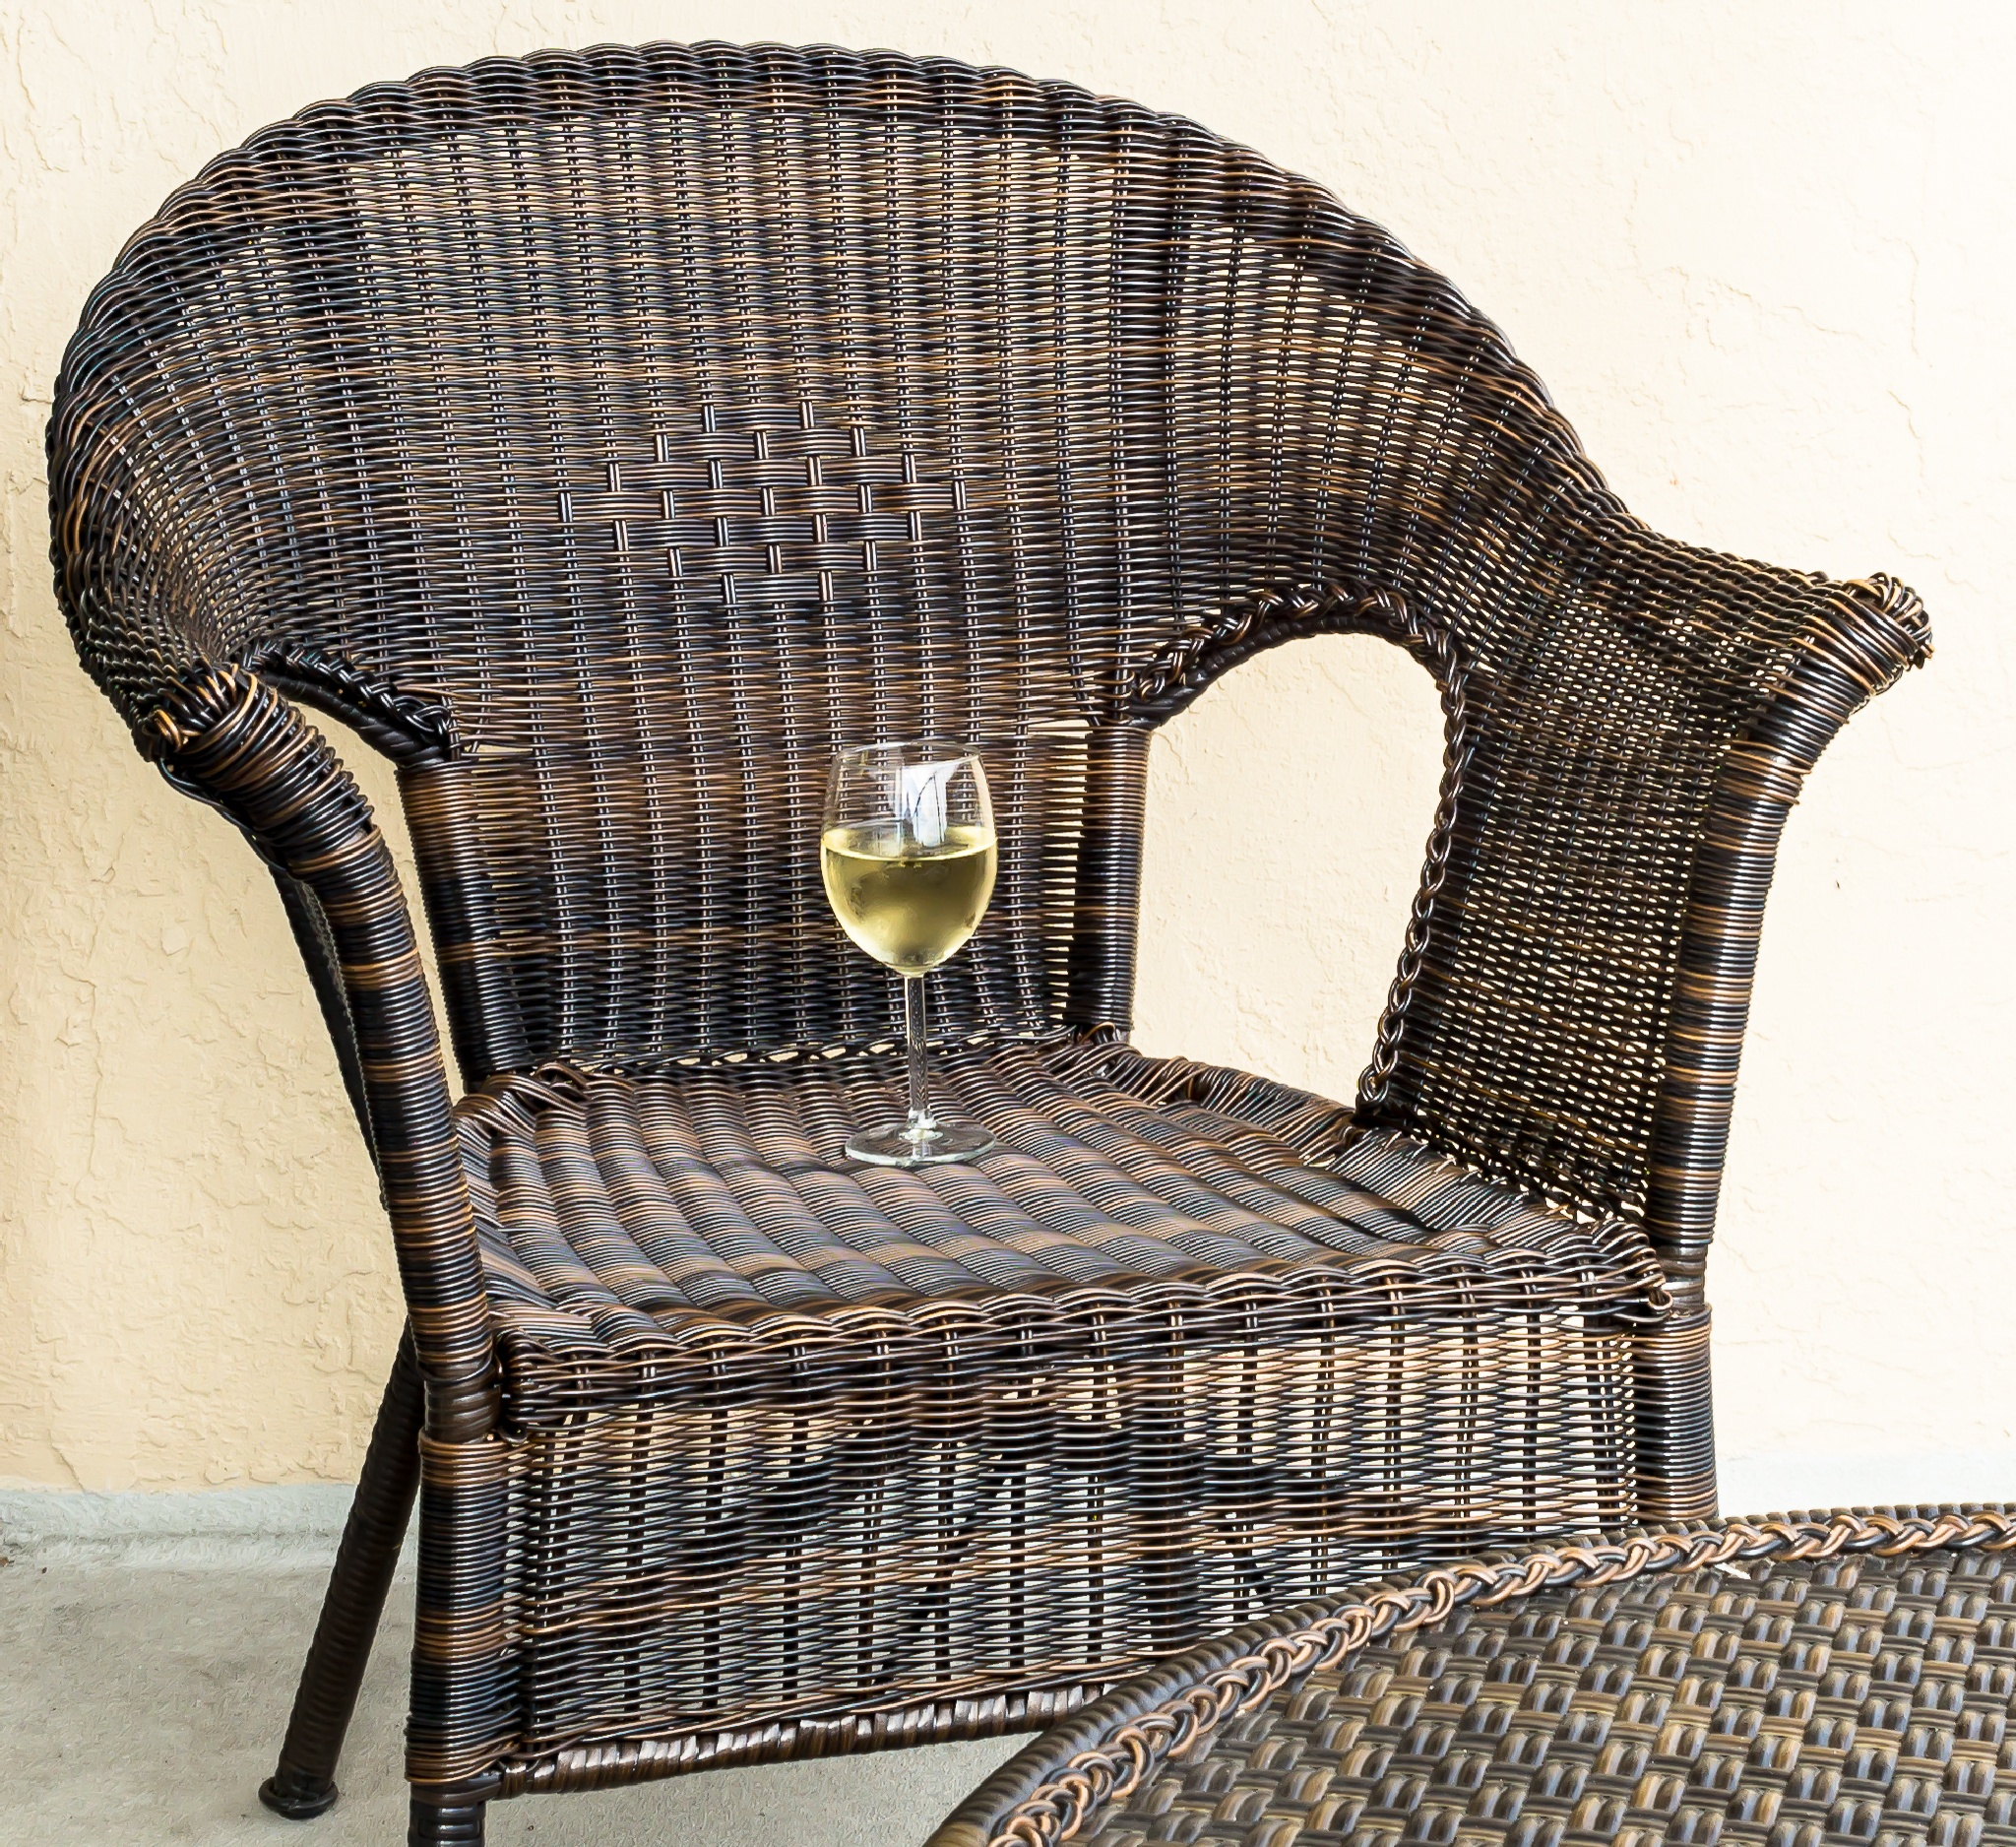 Wine on the deck chair by Stephen C. Benine